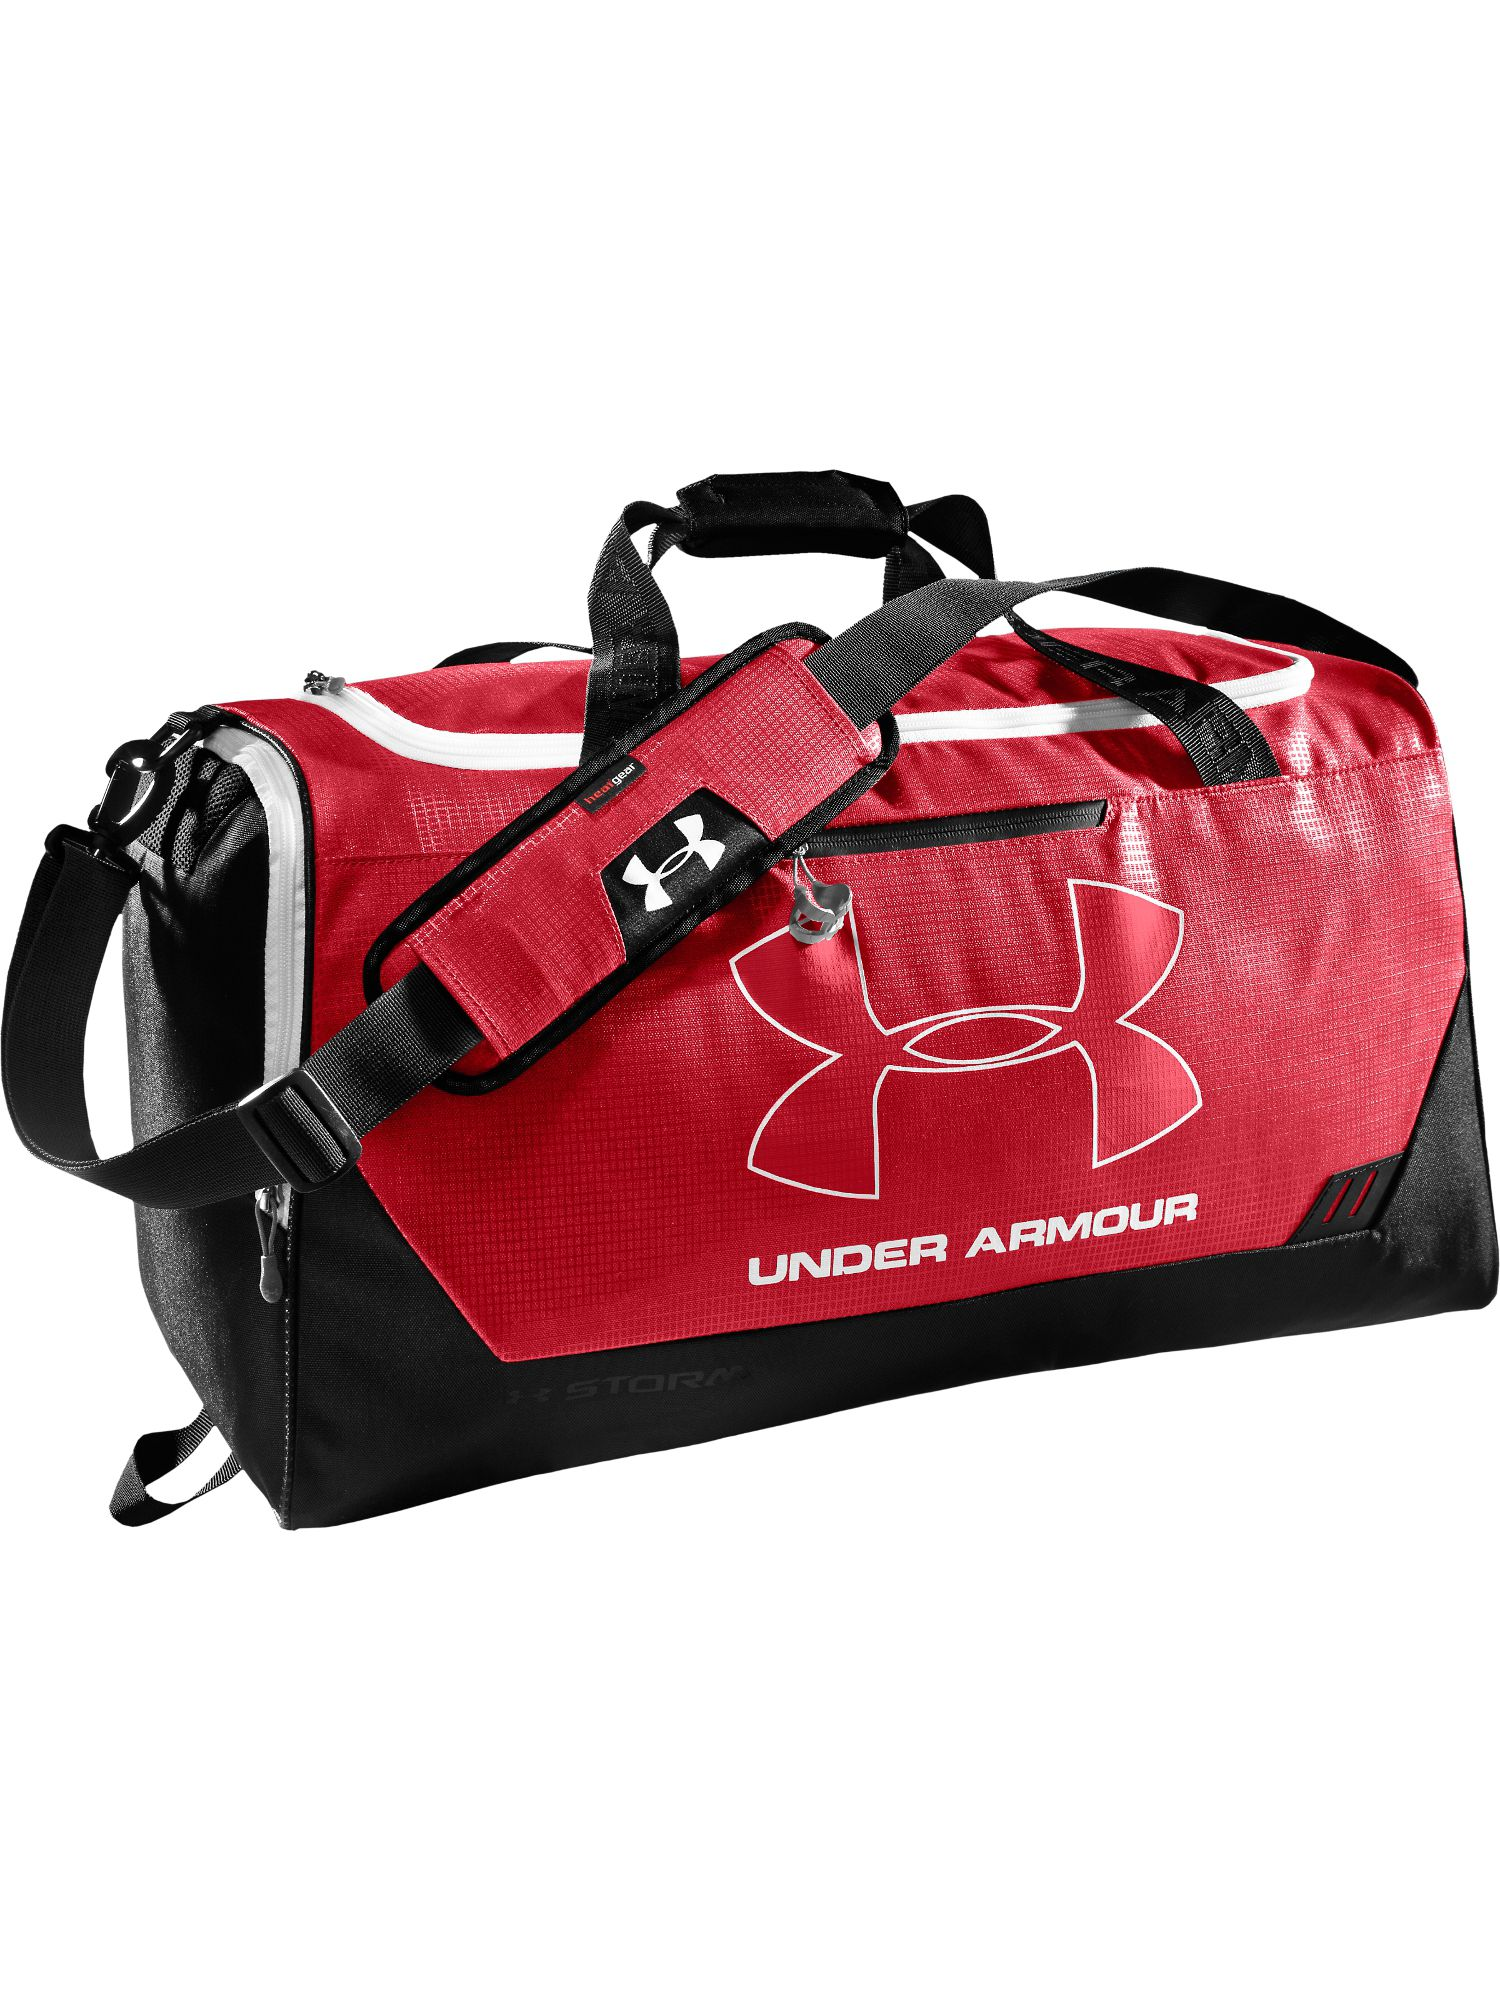 Under Armour Hustle Md Duffel Bag In Red For Men Lyst